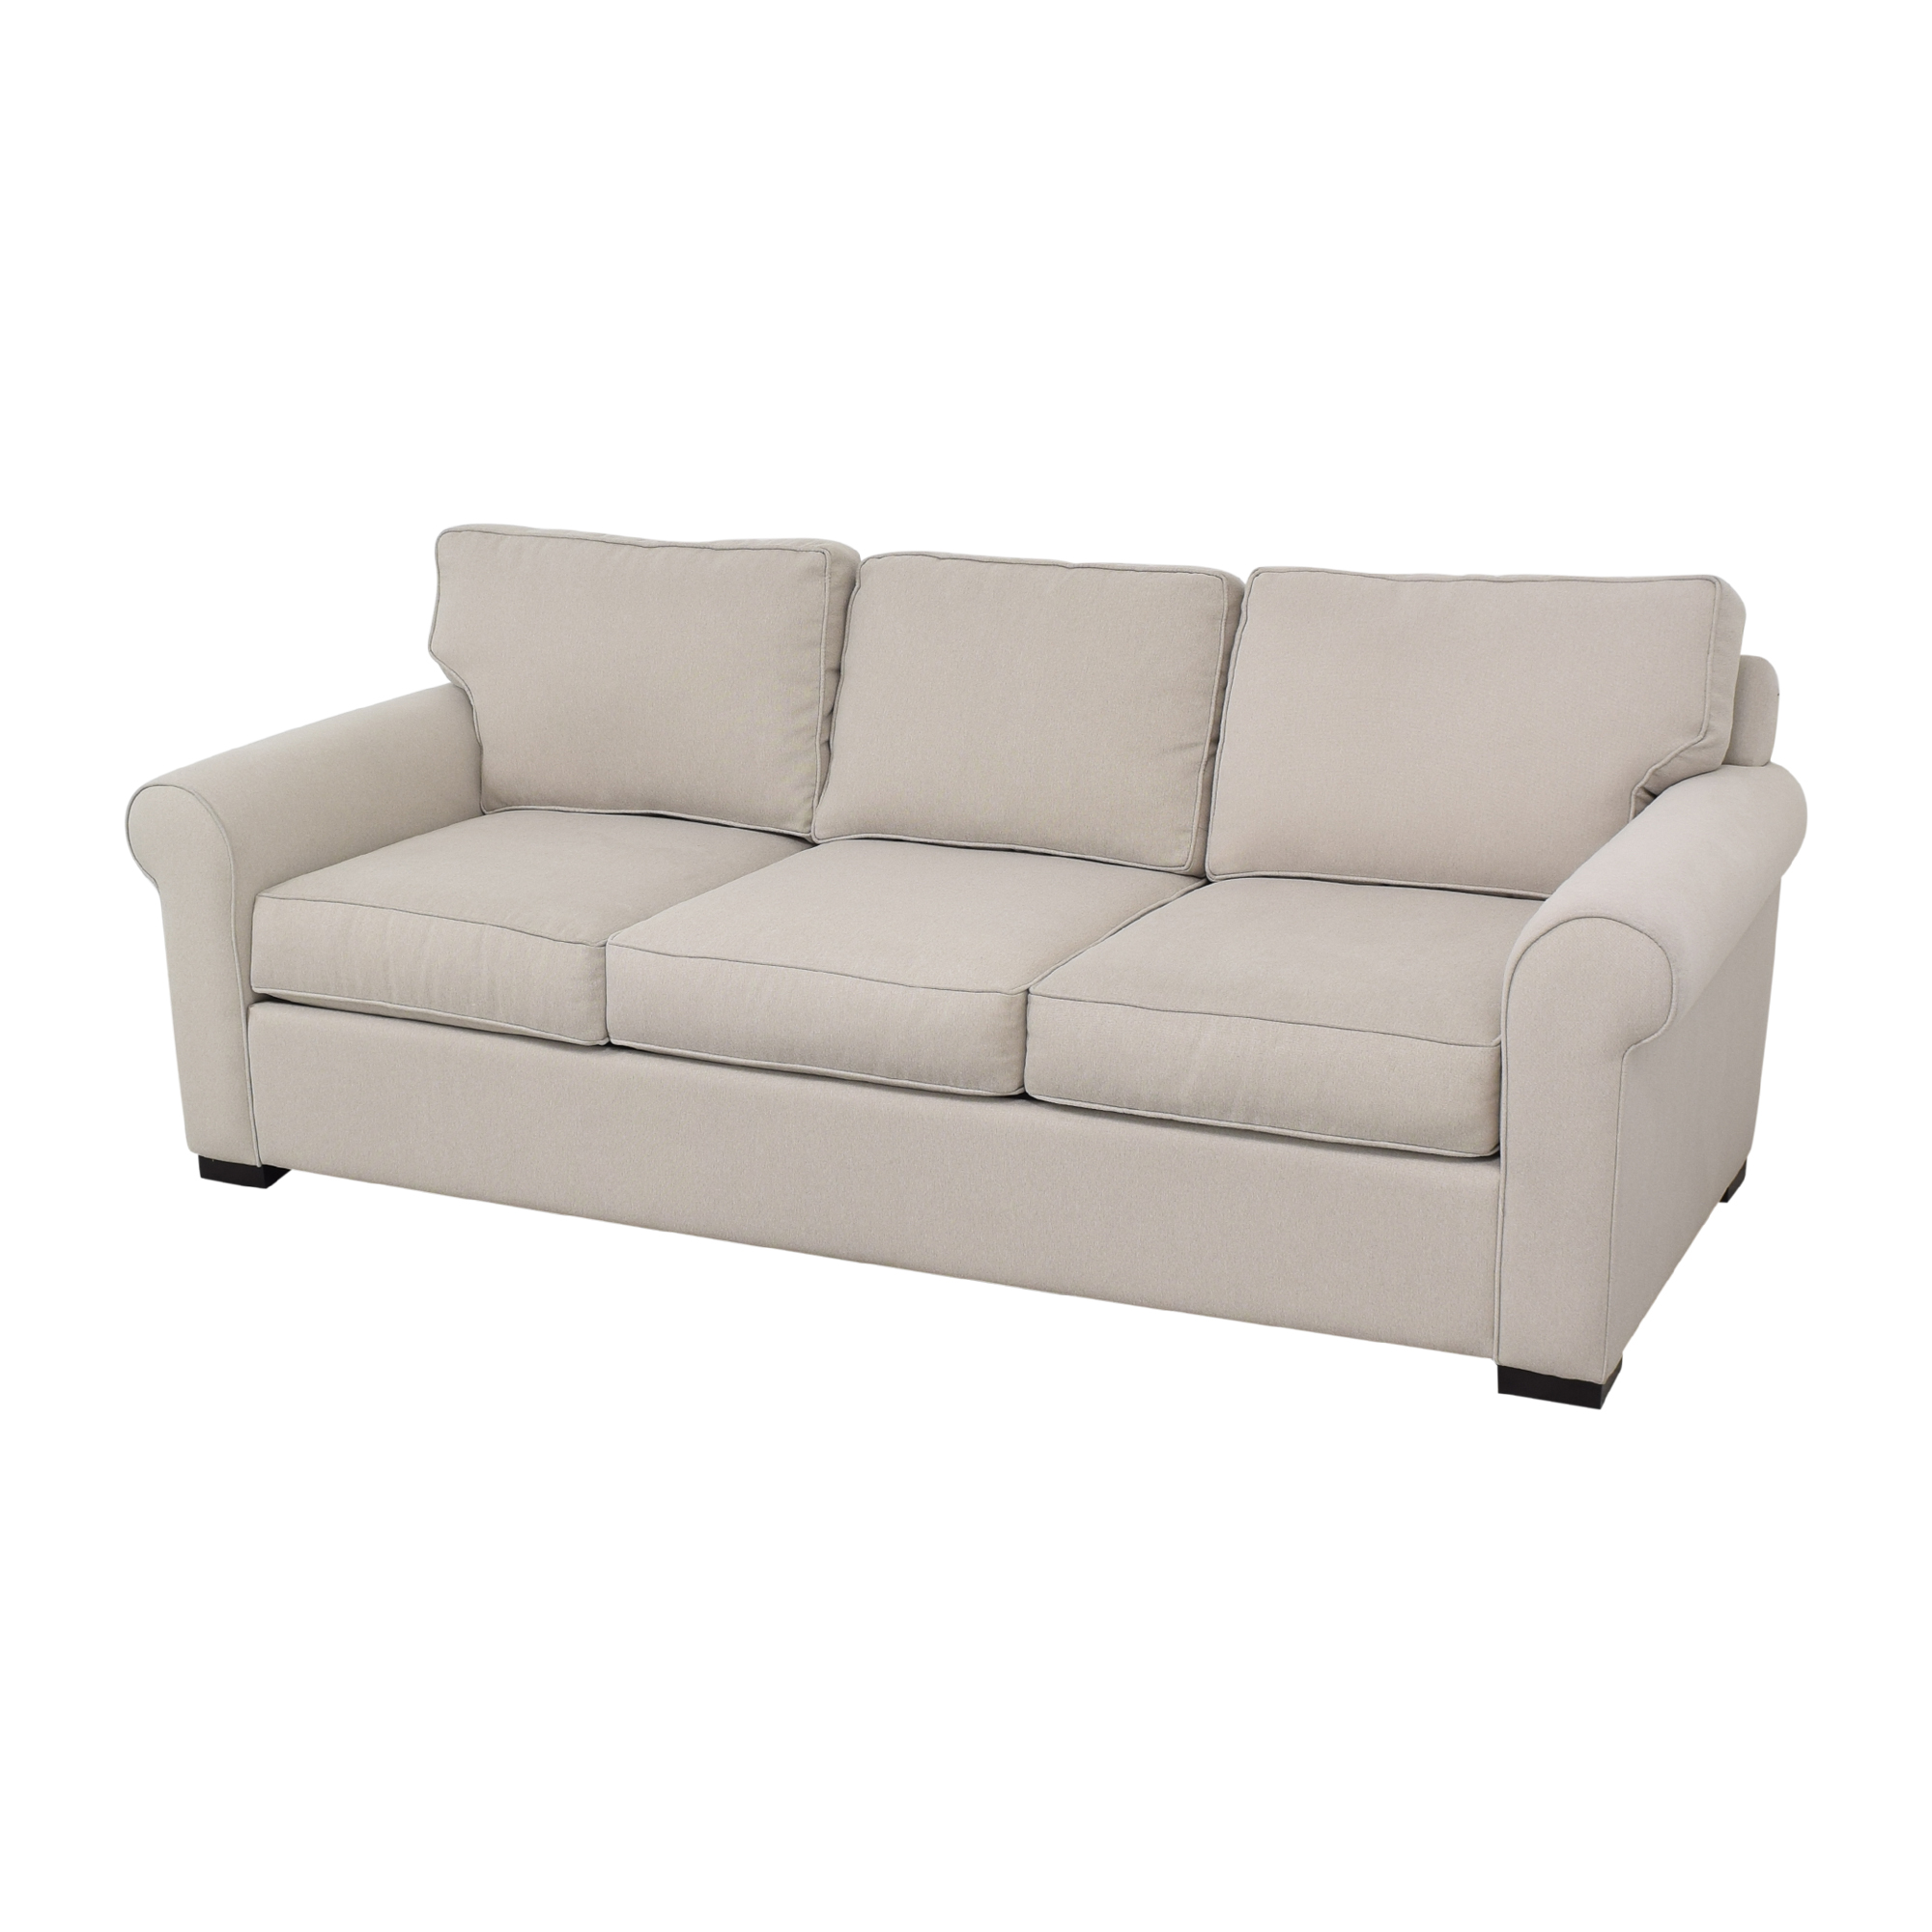 Macy's Macy's Upholstered Sofa for sale